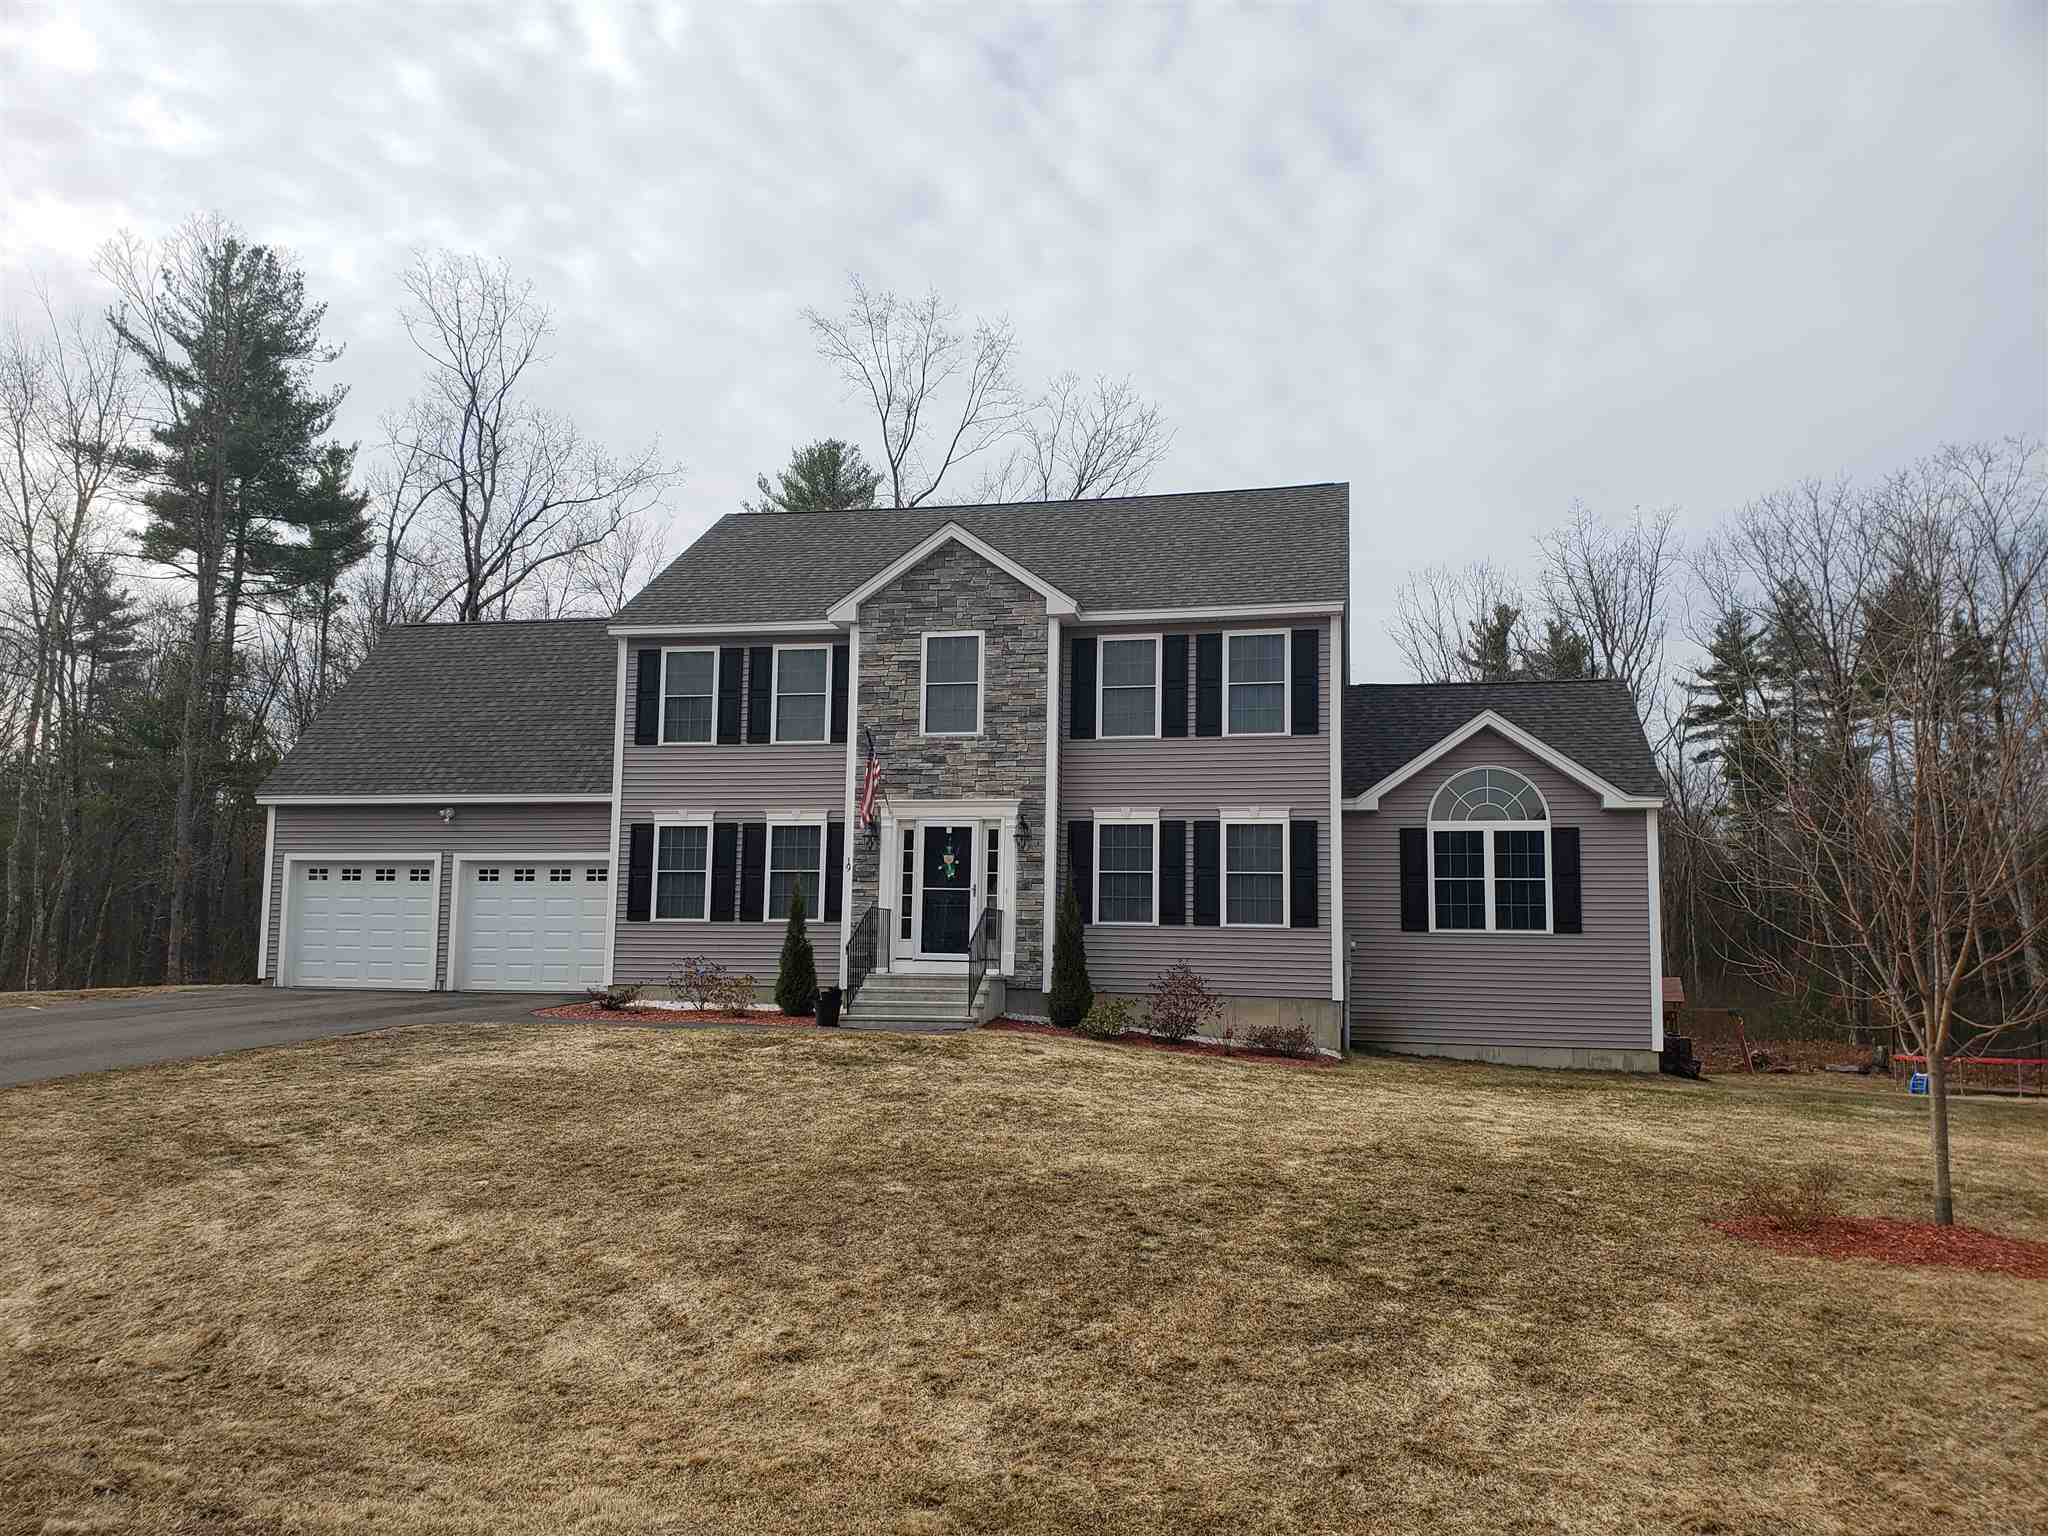 MLS 4797228: 19 Hamel Circle, Litchfield NH